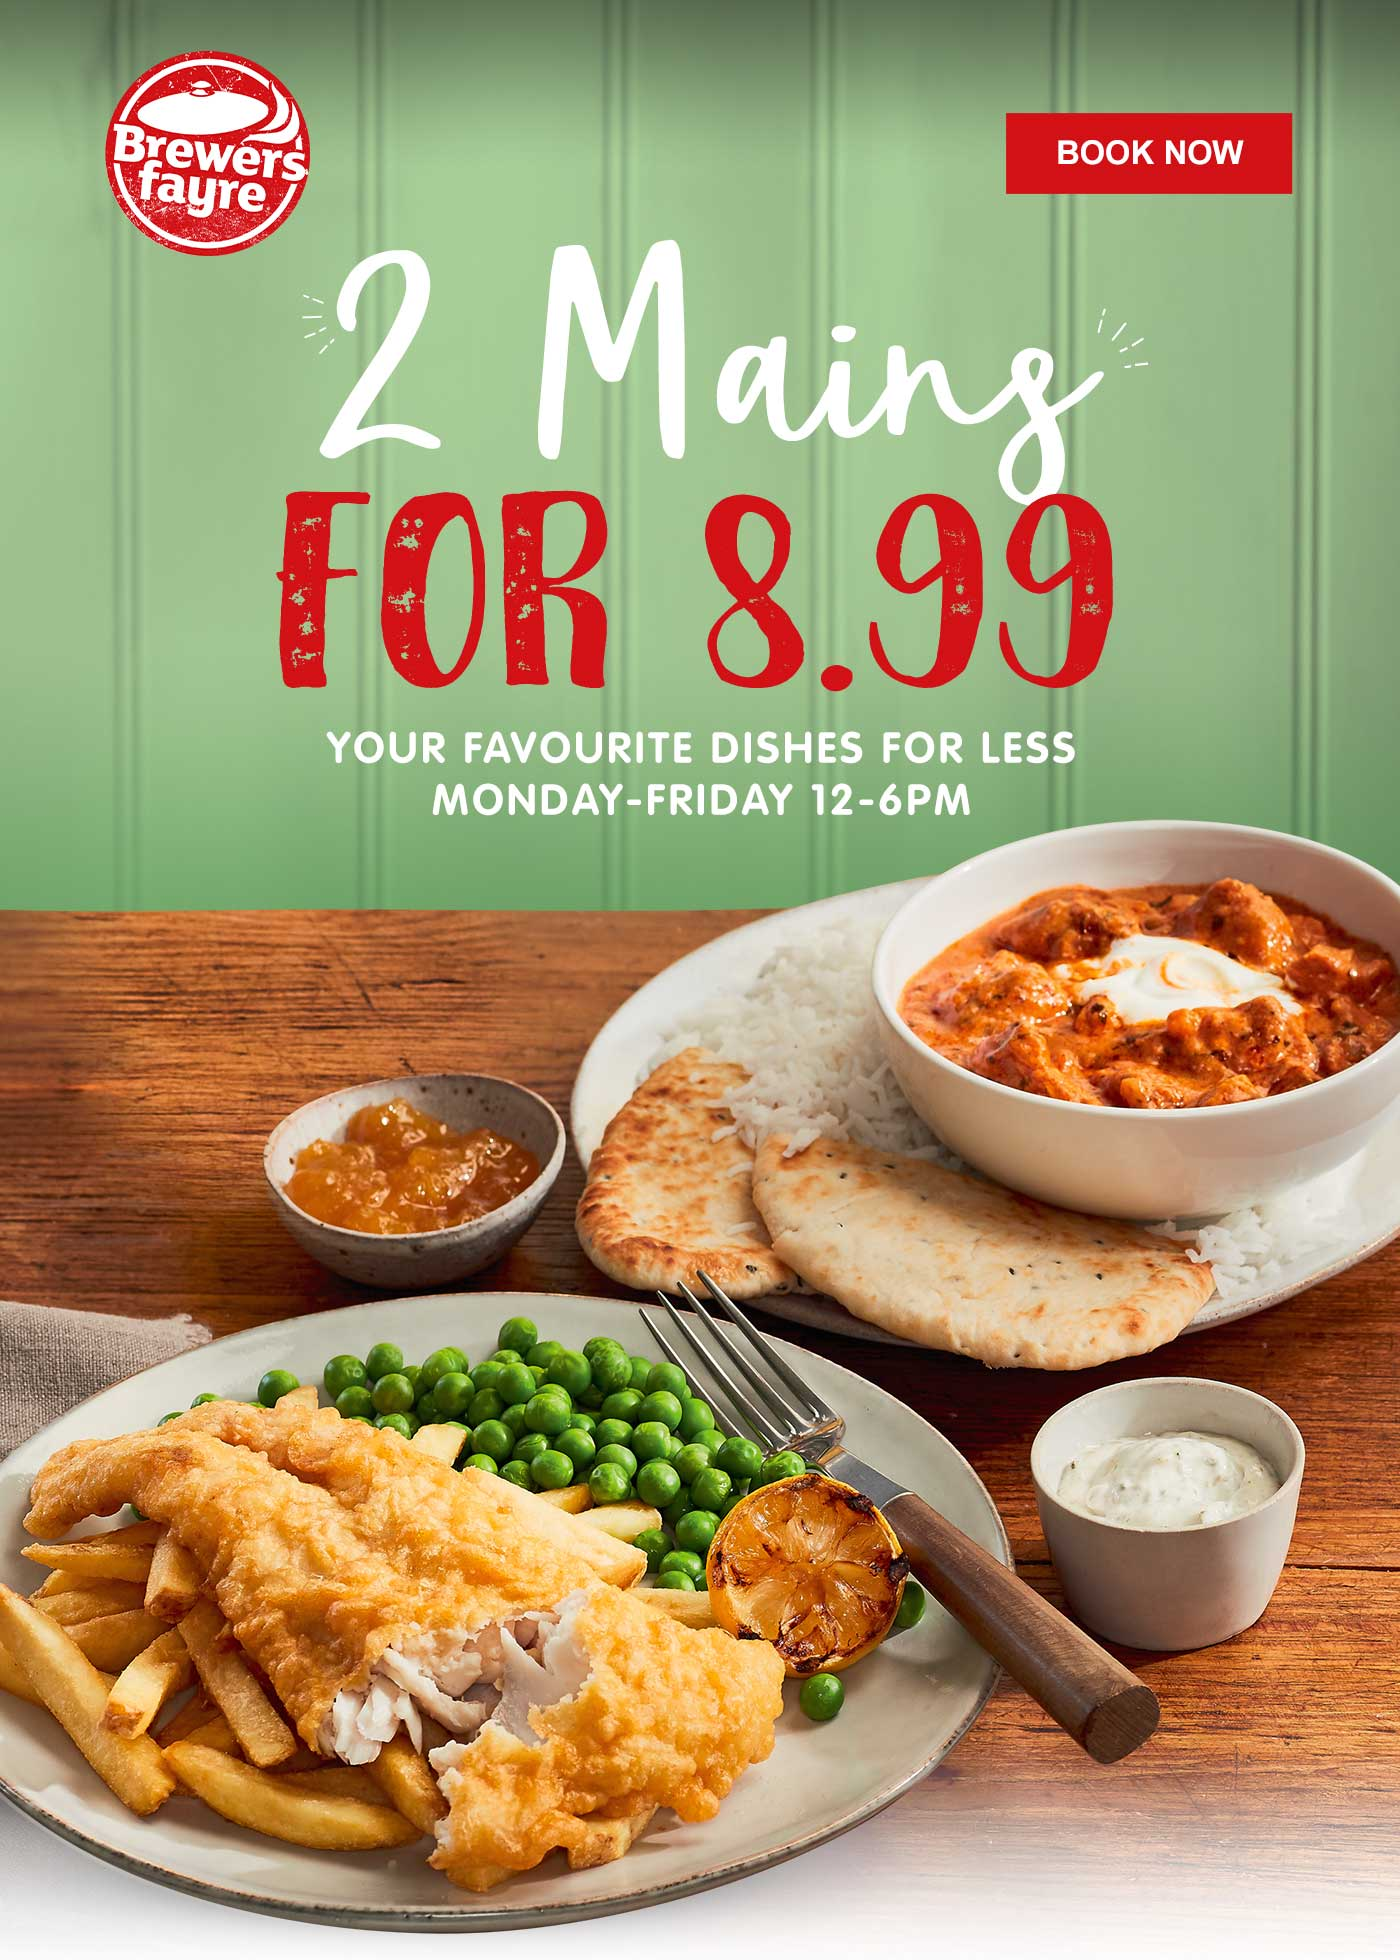 2 MAINS FOR 8.99